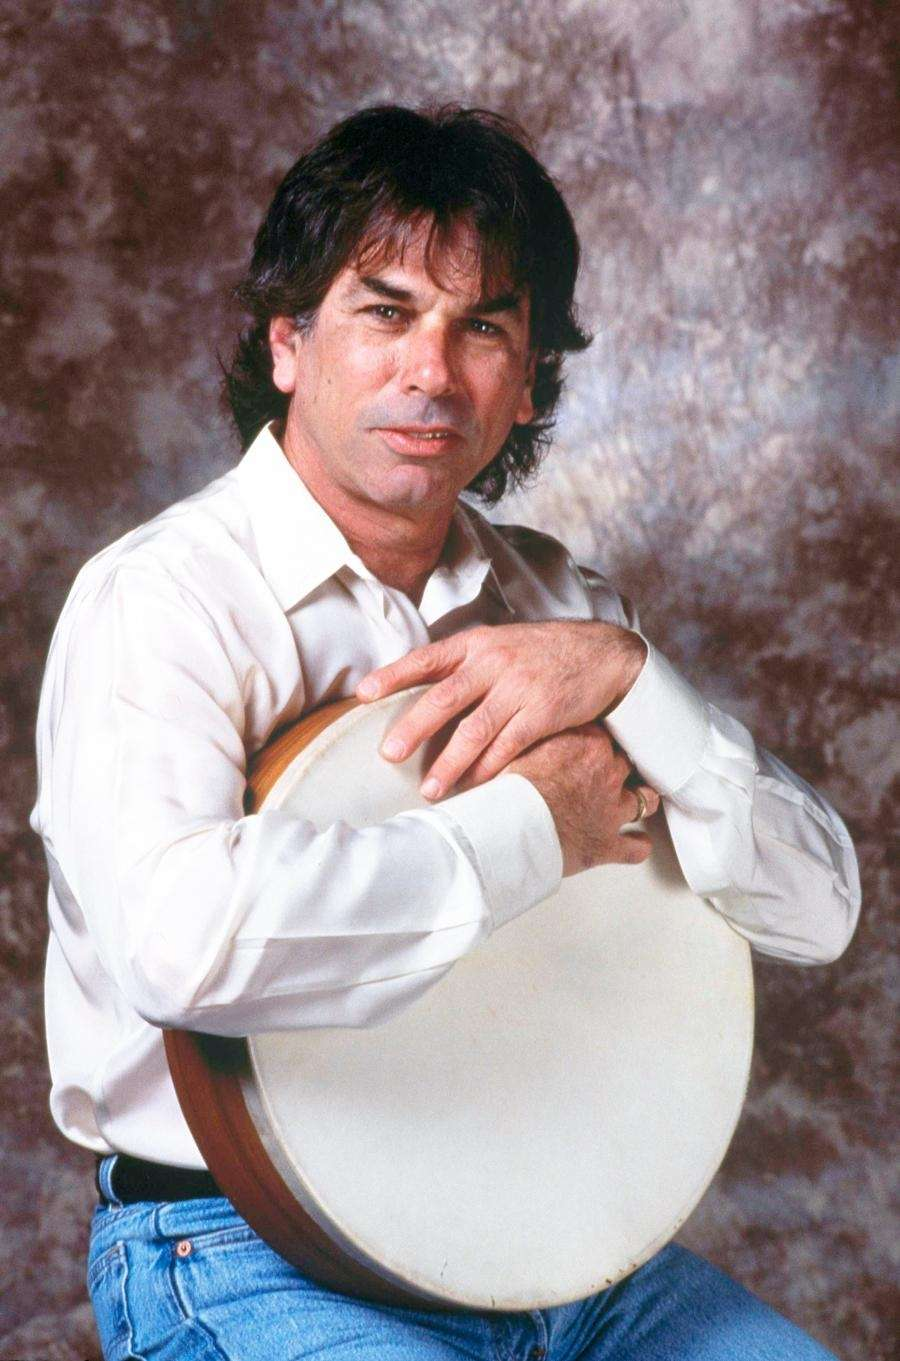 Former Grateful Dead drummer Mickey Hart was born